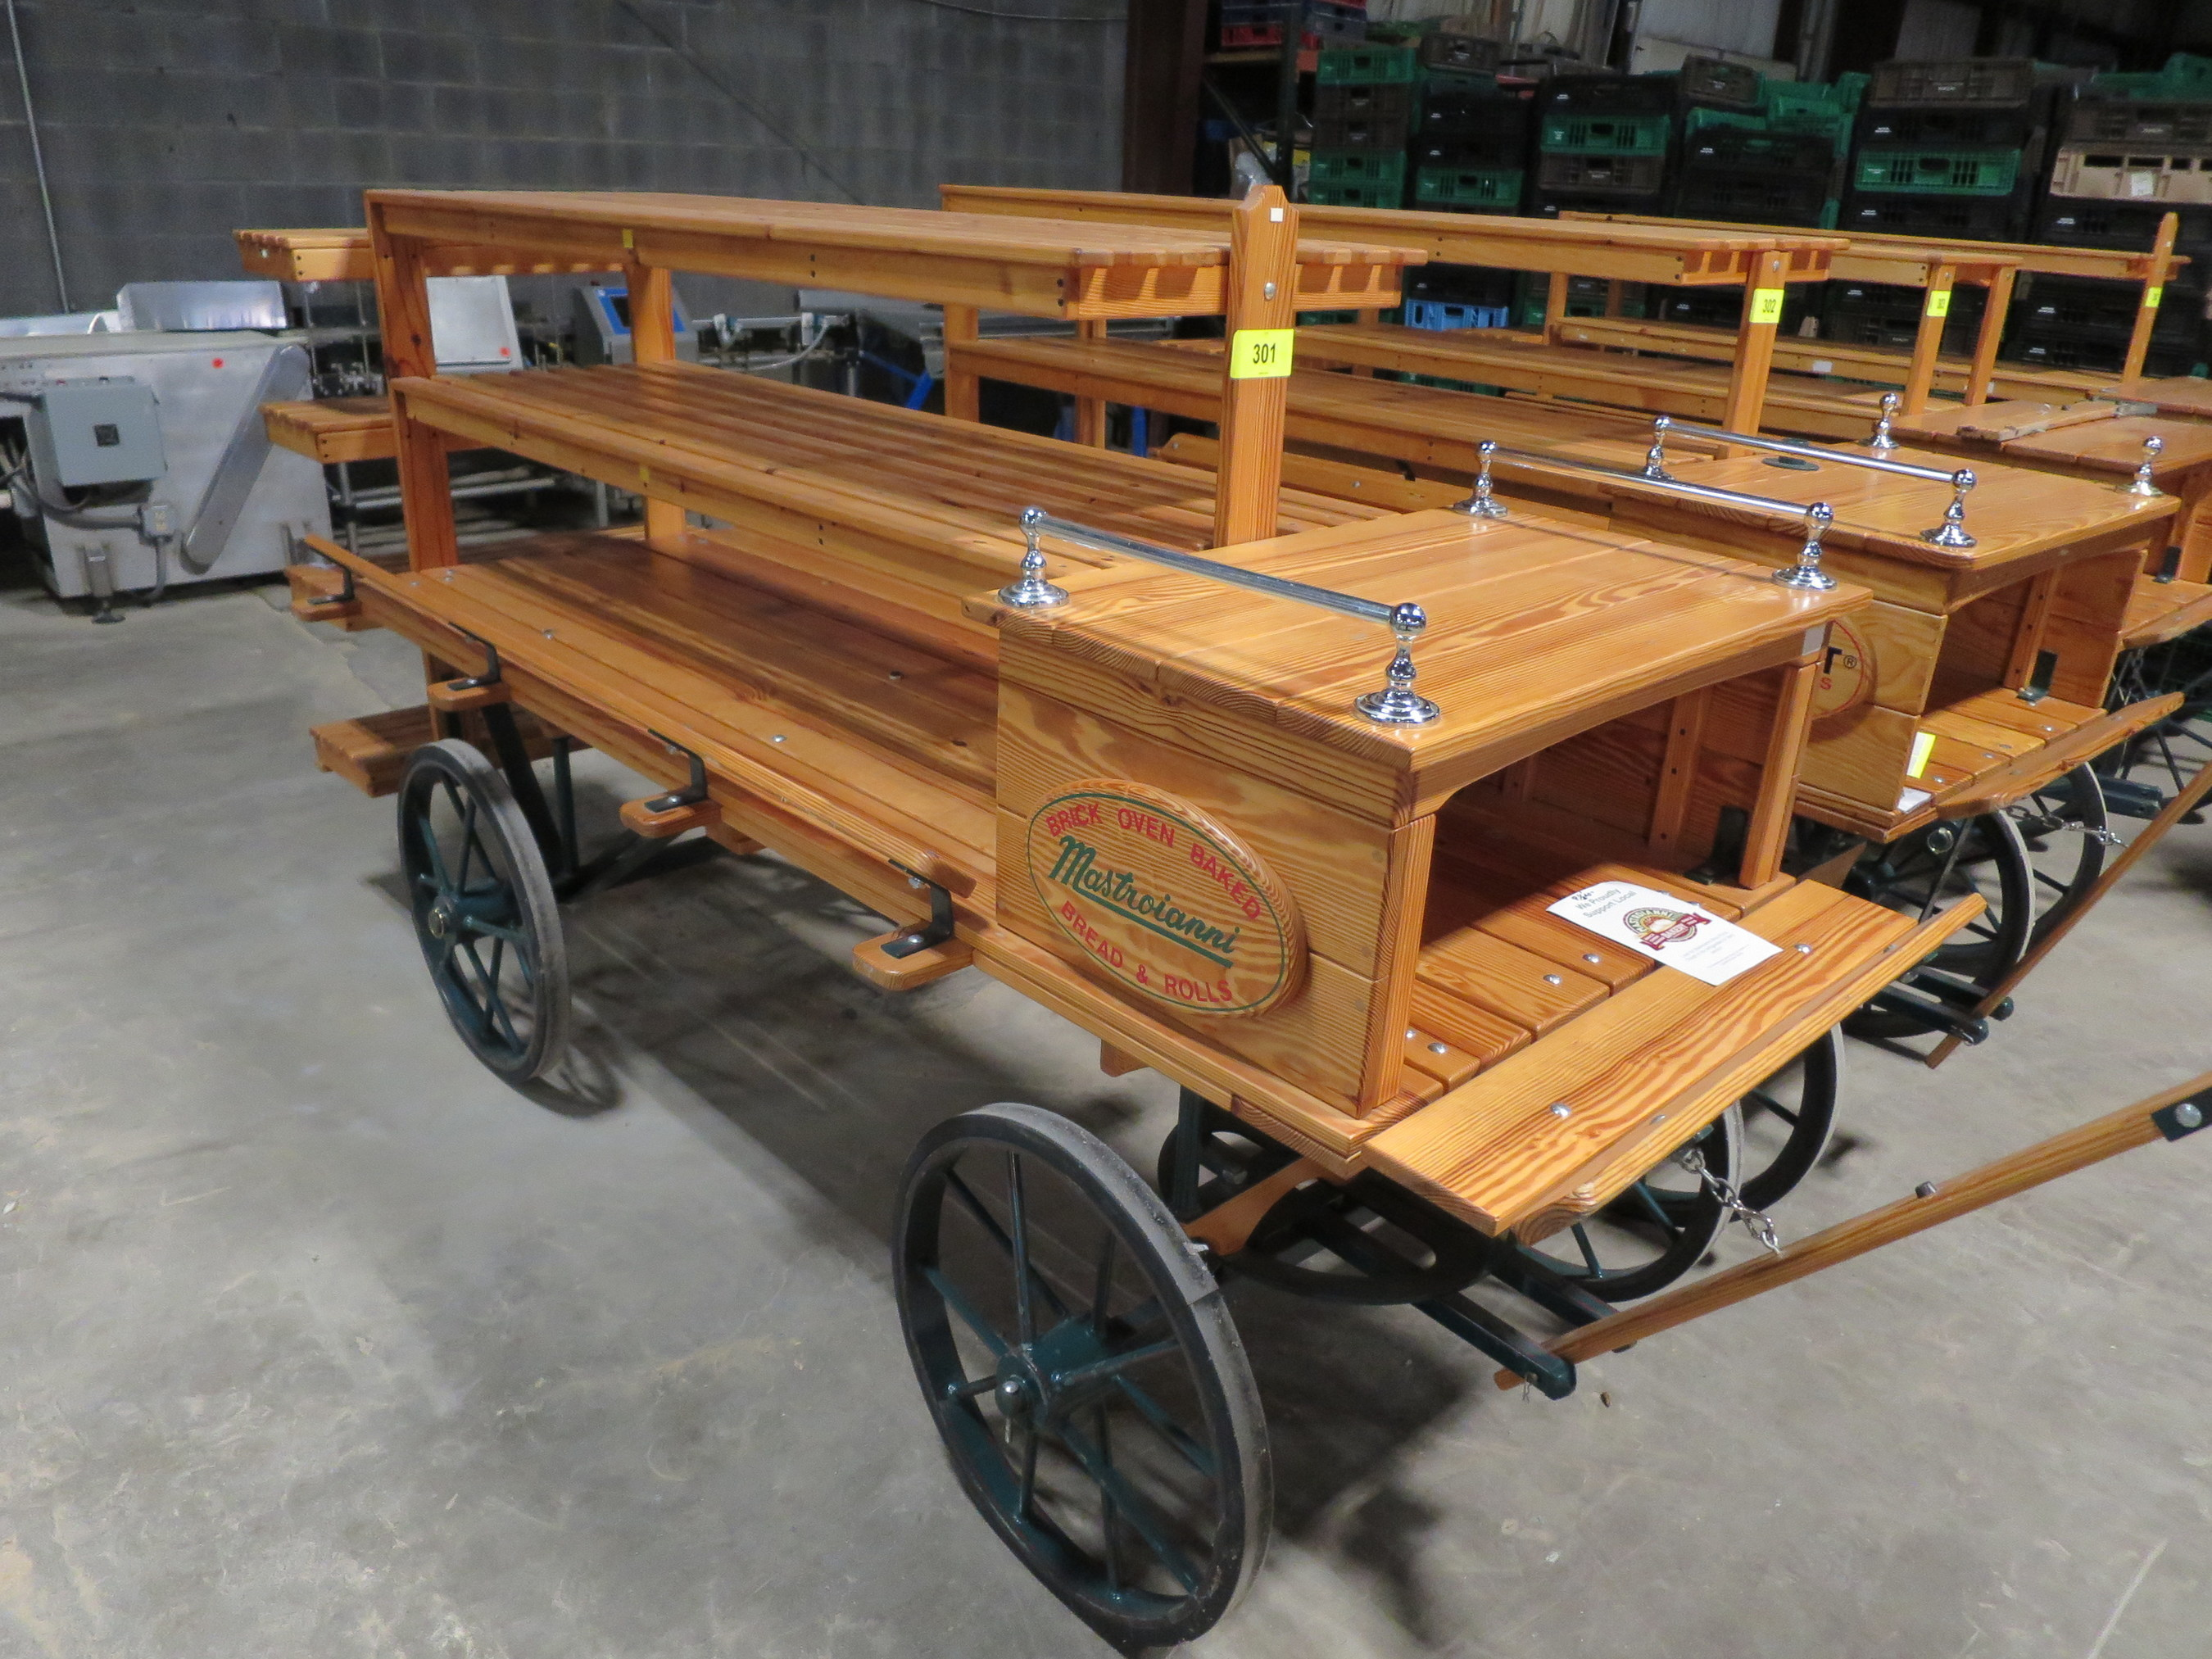 Handmade Merli Carriage Company carts, available for auction with Rabin Worldwide starting Nov 28, 2016